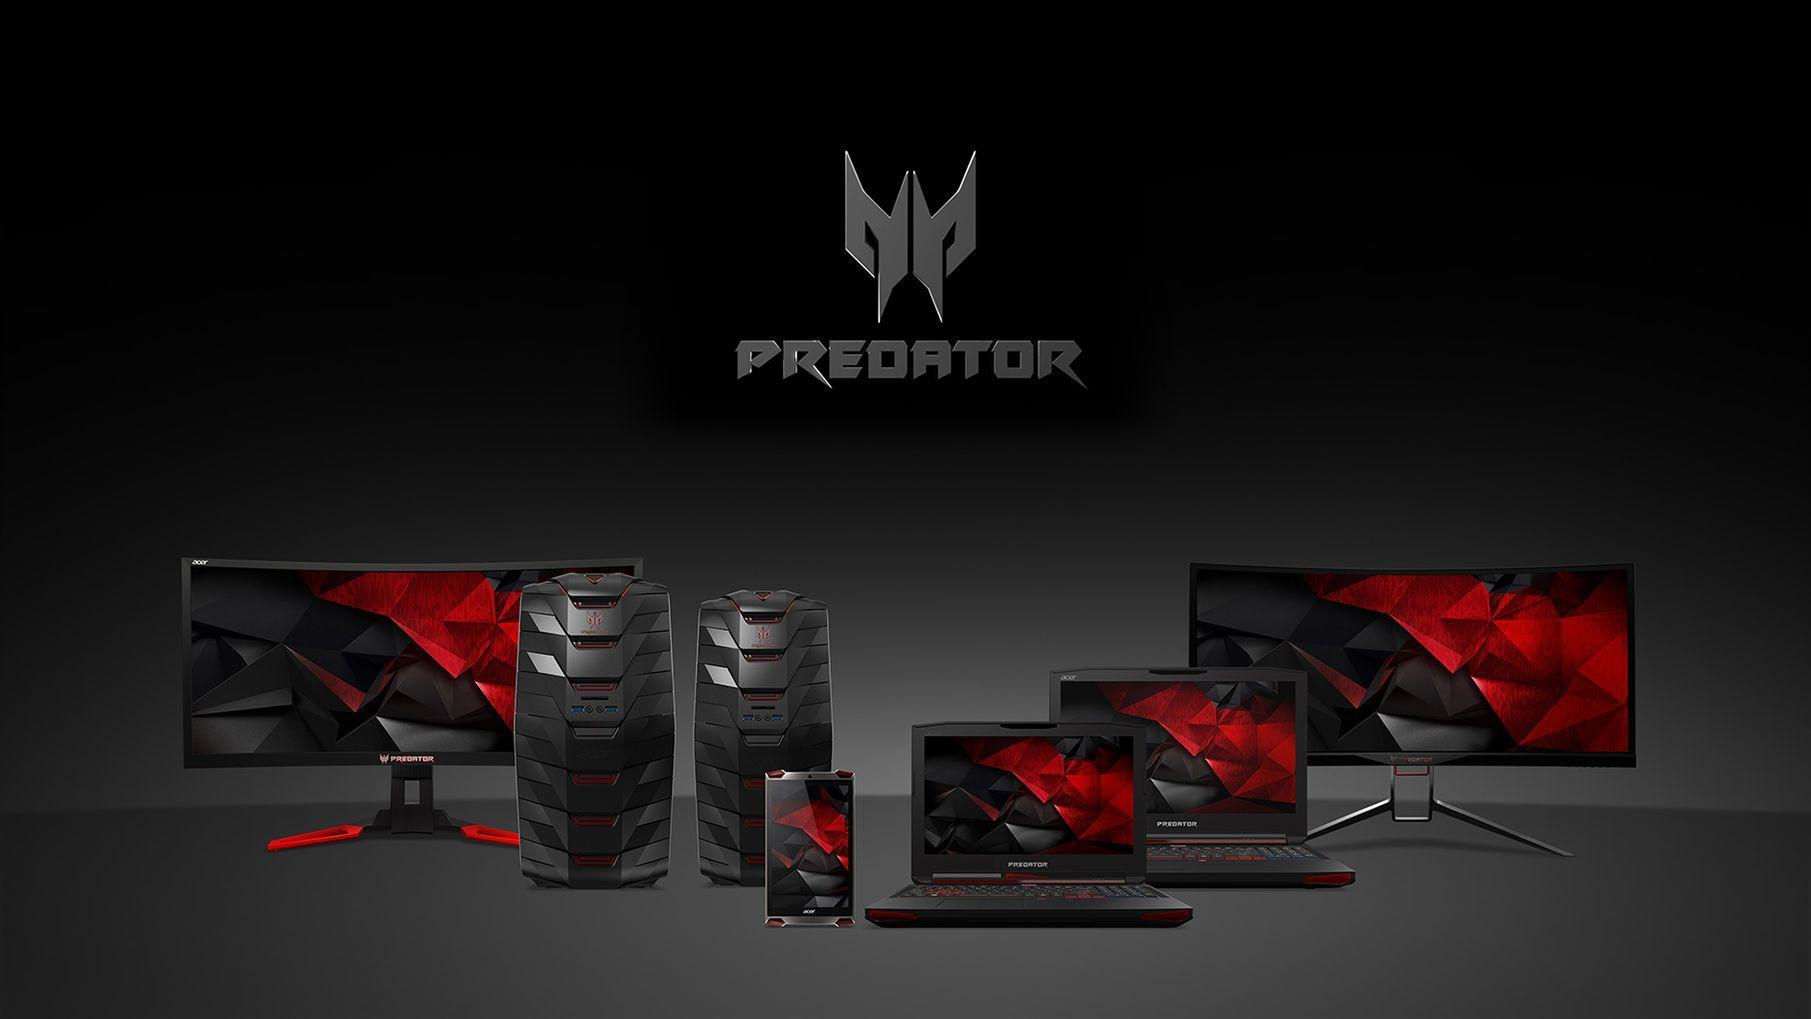 A look at the new Acer Predator Range